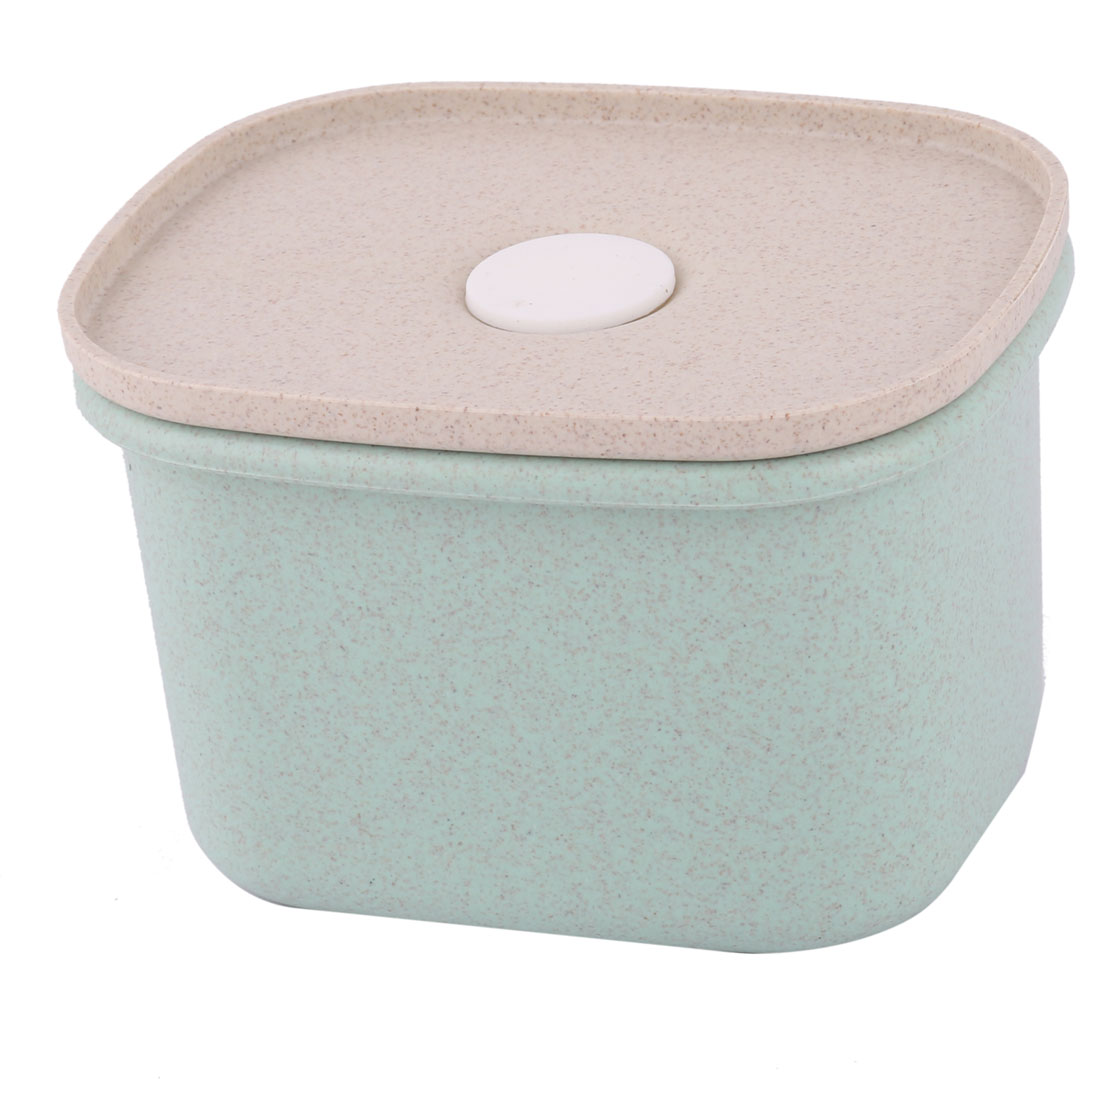 Household Kitchen Wheat Straw Jujube Bean Corn Storage Organizer Box Case Green - image 4 of 4